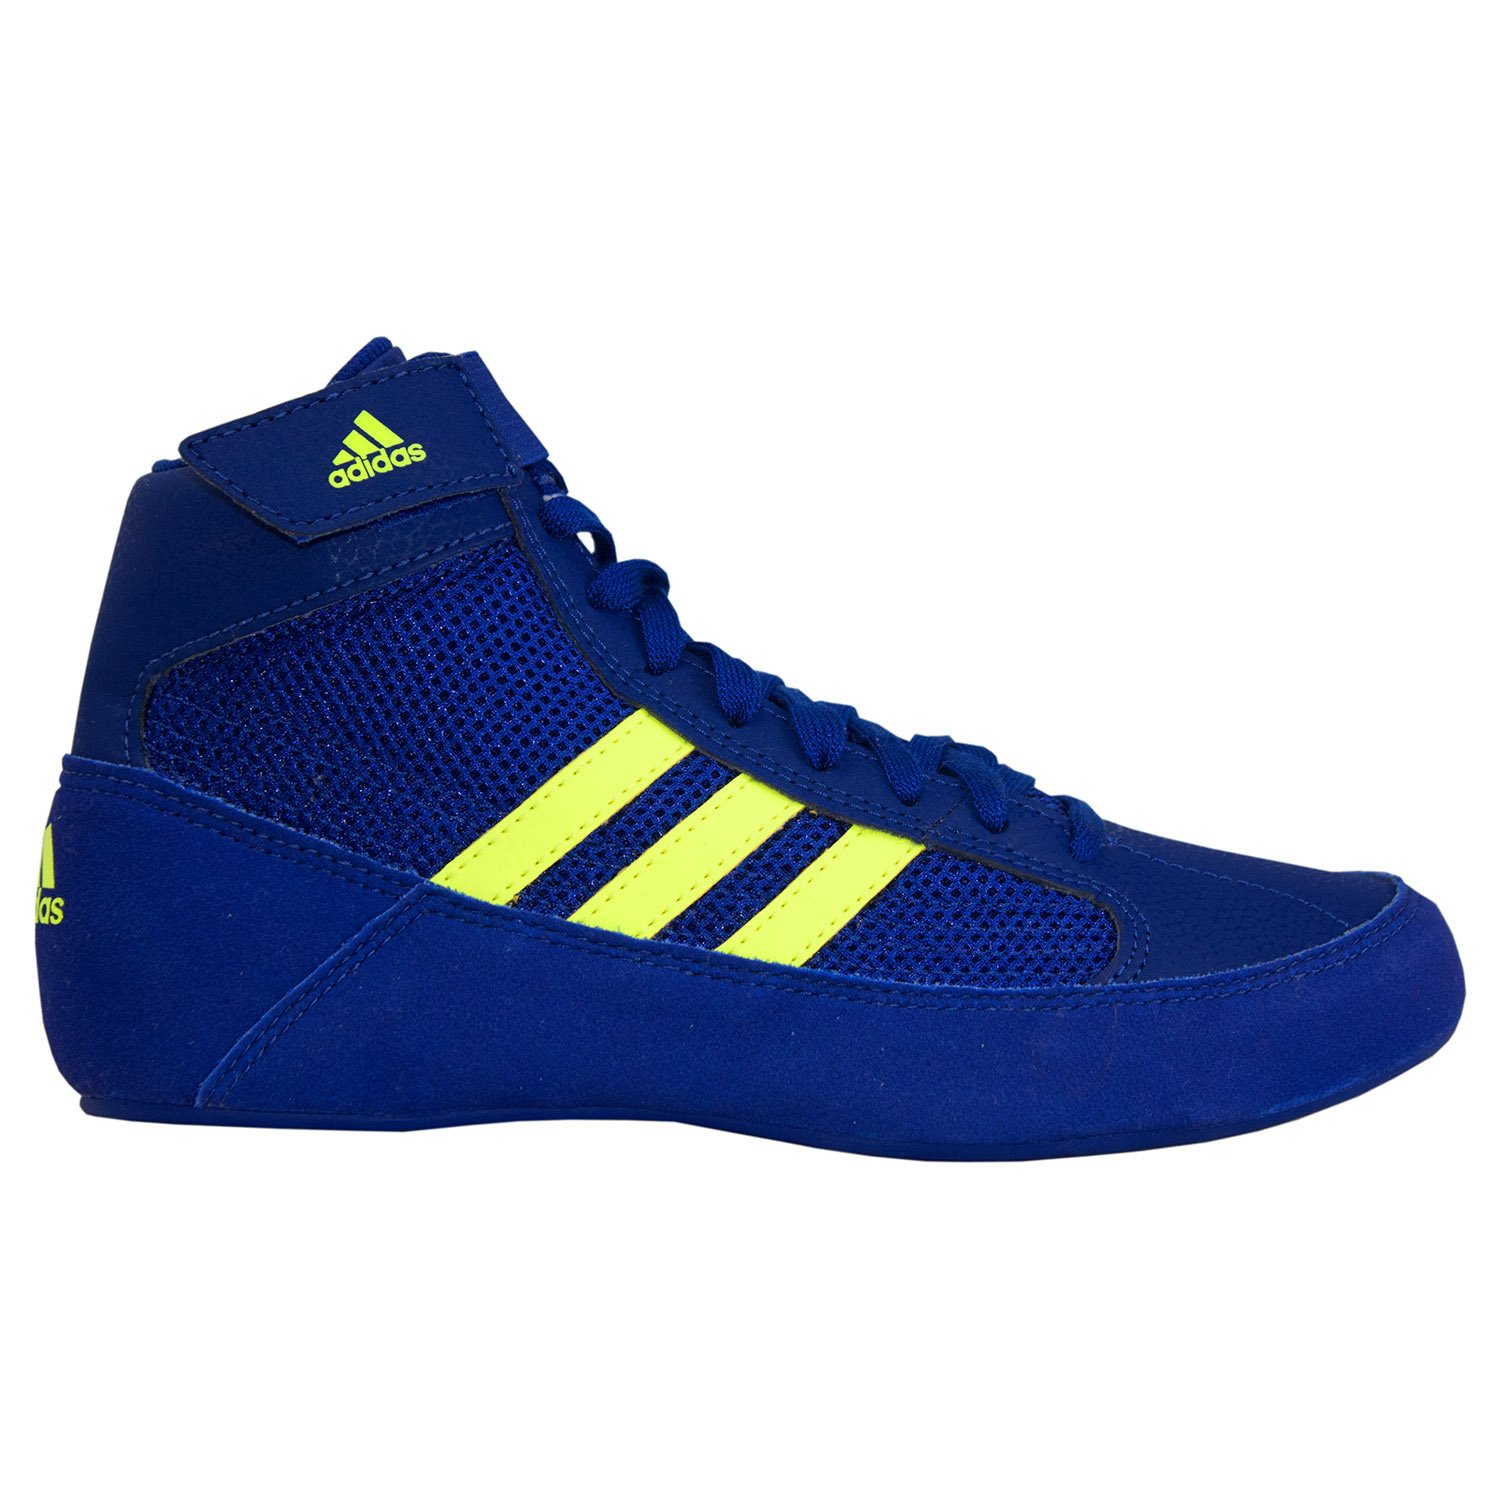 adidas Hvc 2 Royal Solar Yellow Wrestling Shoes Royal 2